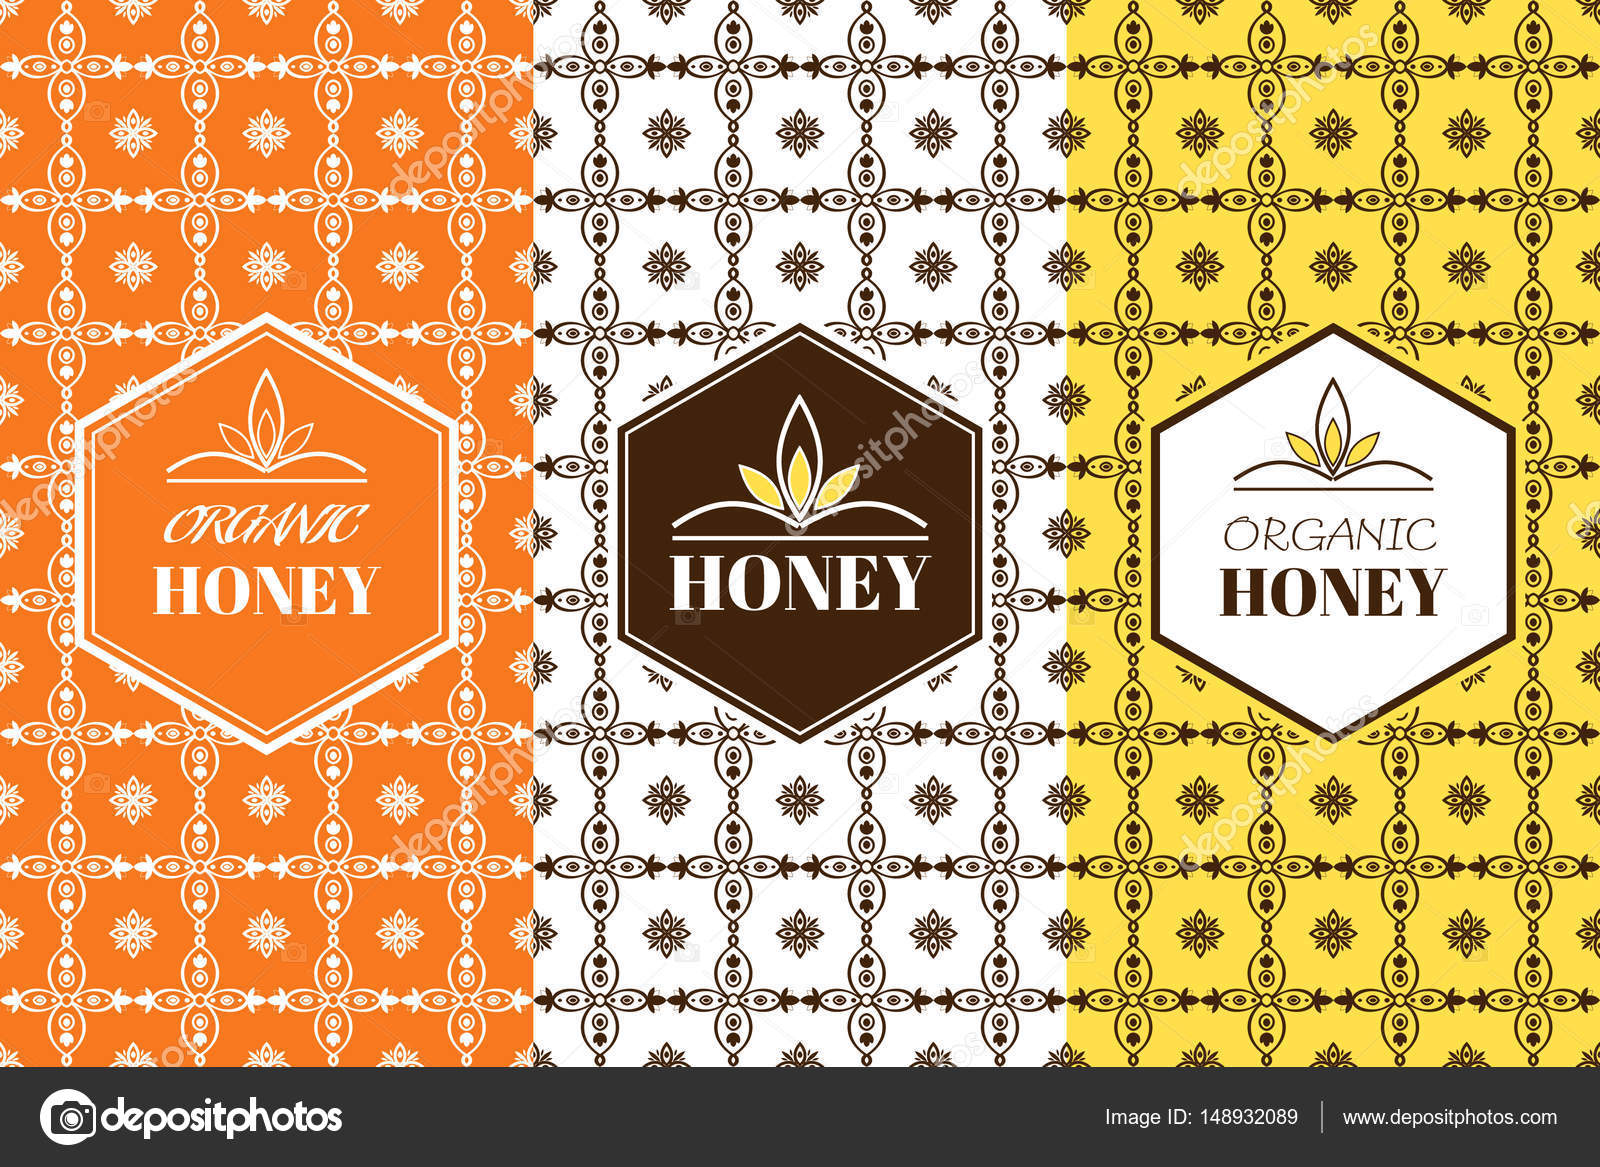 Packaging Labels Template | Vector Honey Packaging Template With Seamless Ornamental Patterns